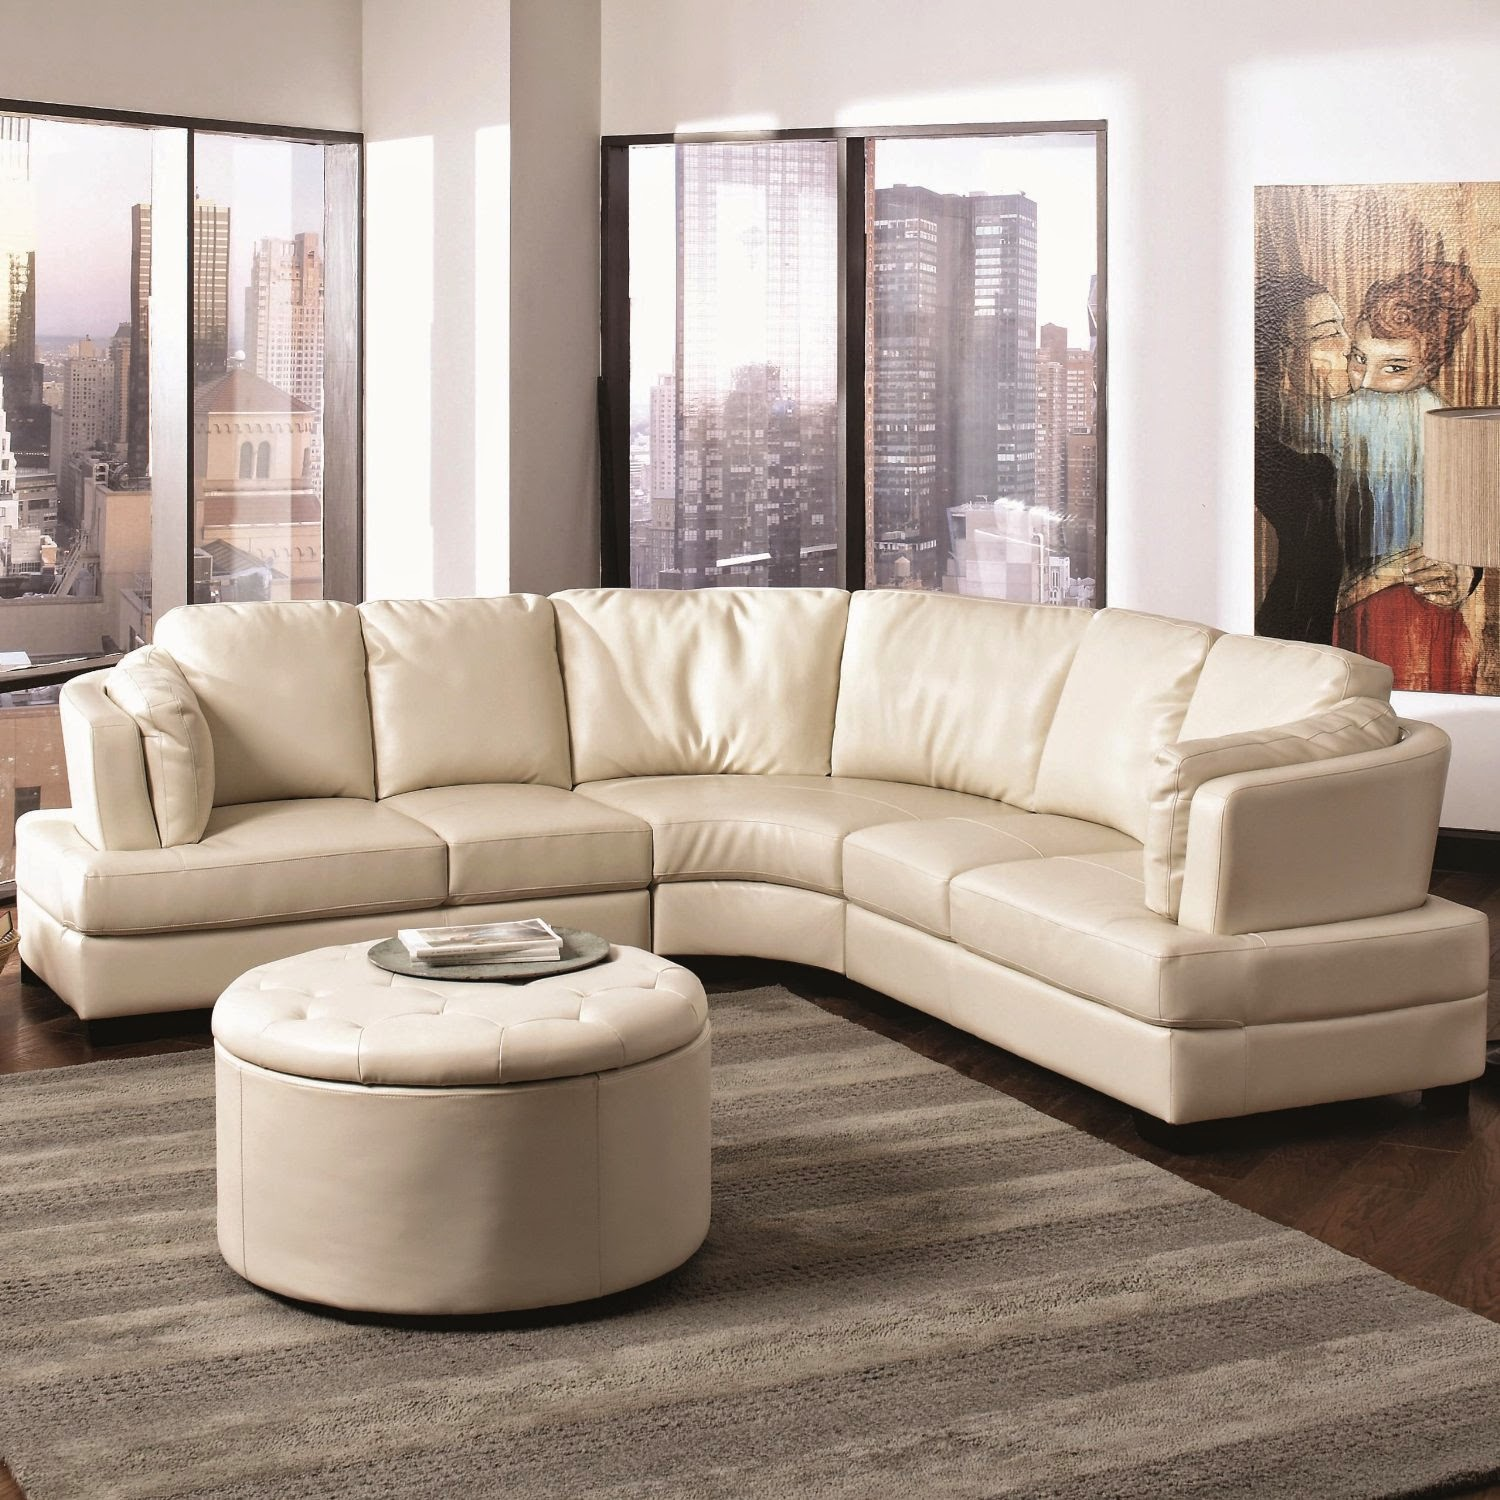 - Curved Sofa Couch For Sale: Curved Leather Sofa Contemporary